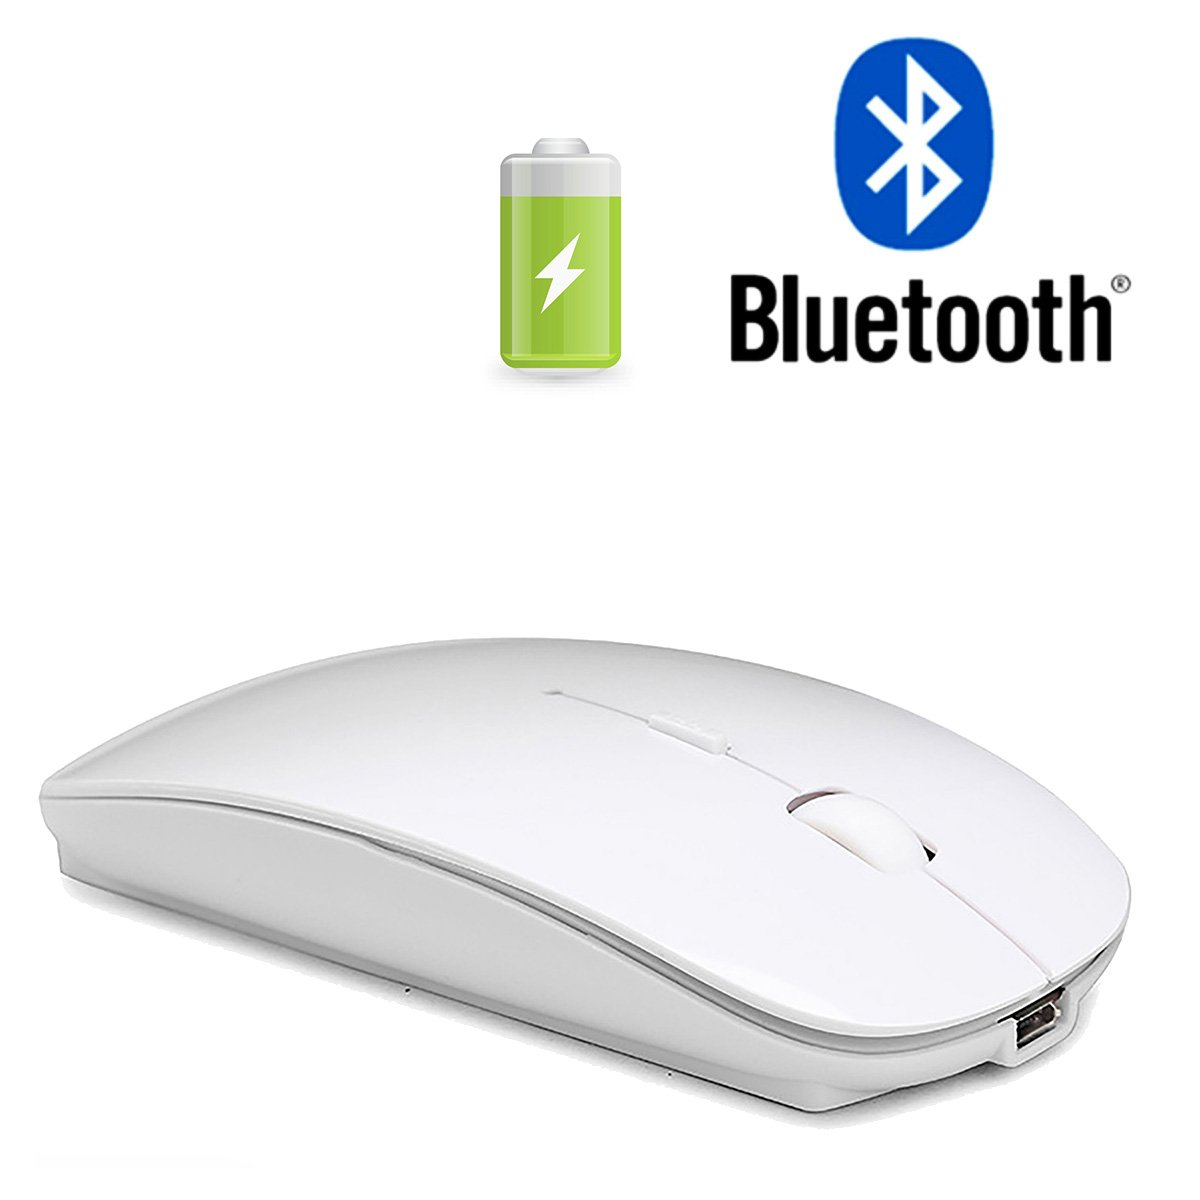 Bluetooth Mouse Rechargeable Bluetooth Mouse for MacBook Pro MacBook Air Laptop Tablet PC,Wireless Bluetooth Mouse for MacBook Pro Bluetooth Mouse for Mac White Aulun